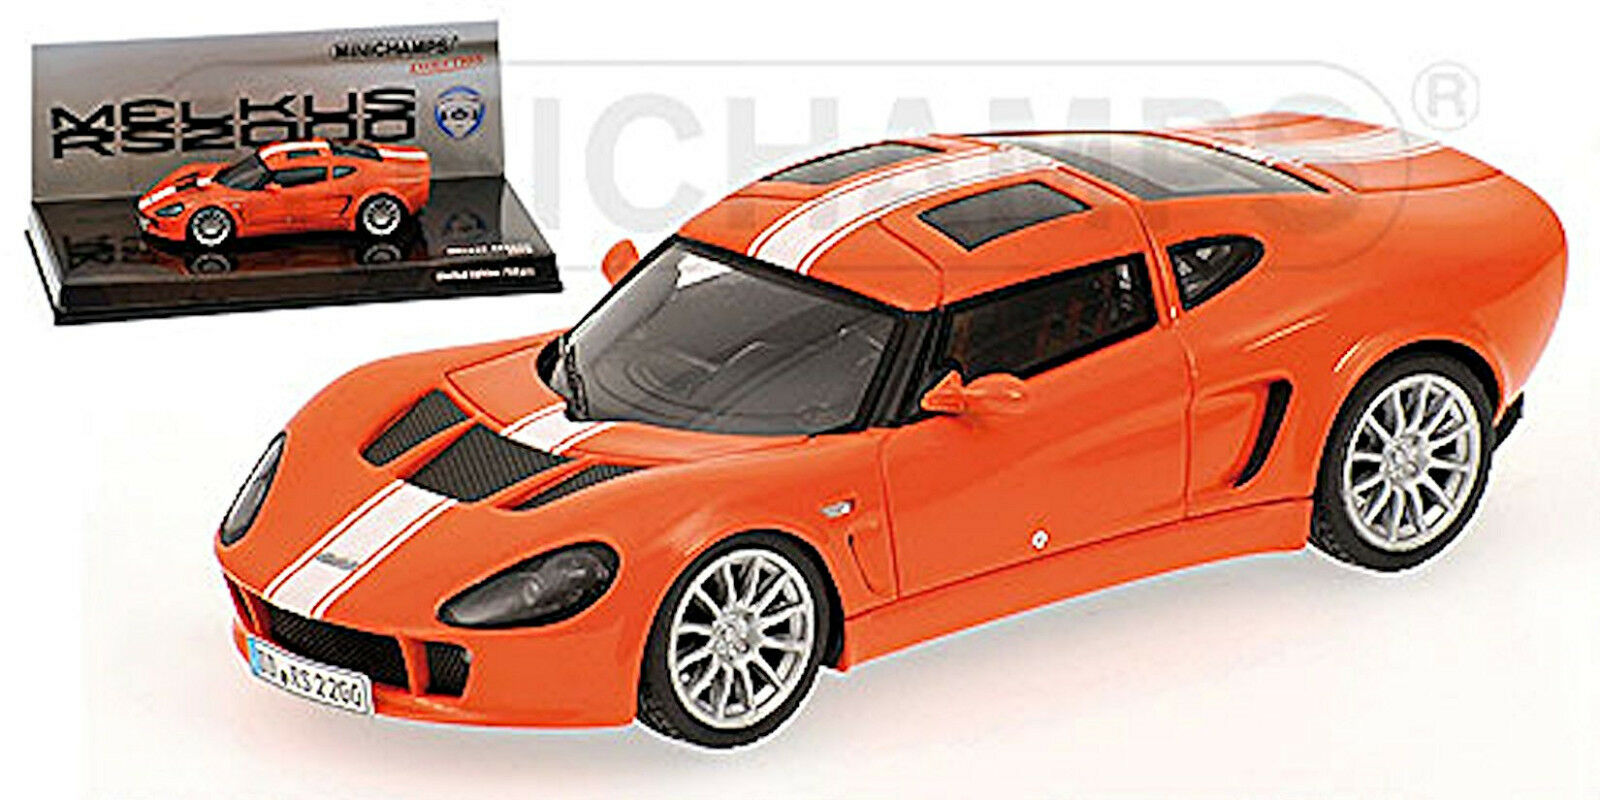 Melkus RS 2000 Coupé 2009-13 Orange 1 43 Minichamps